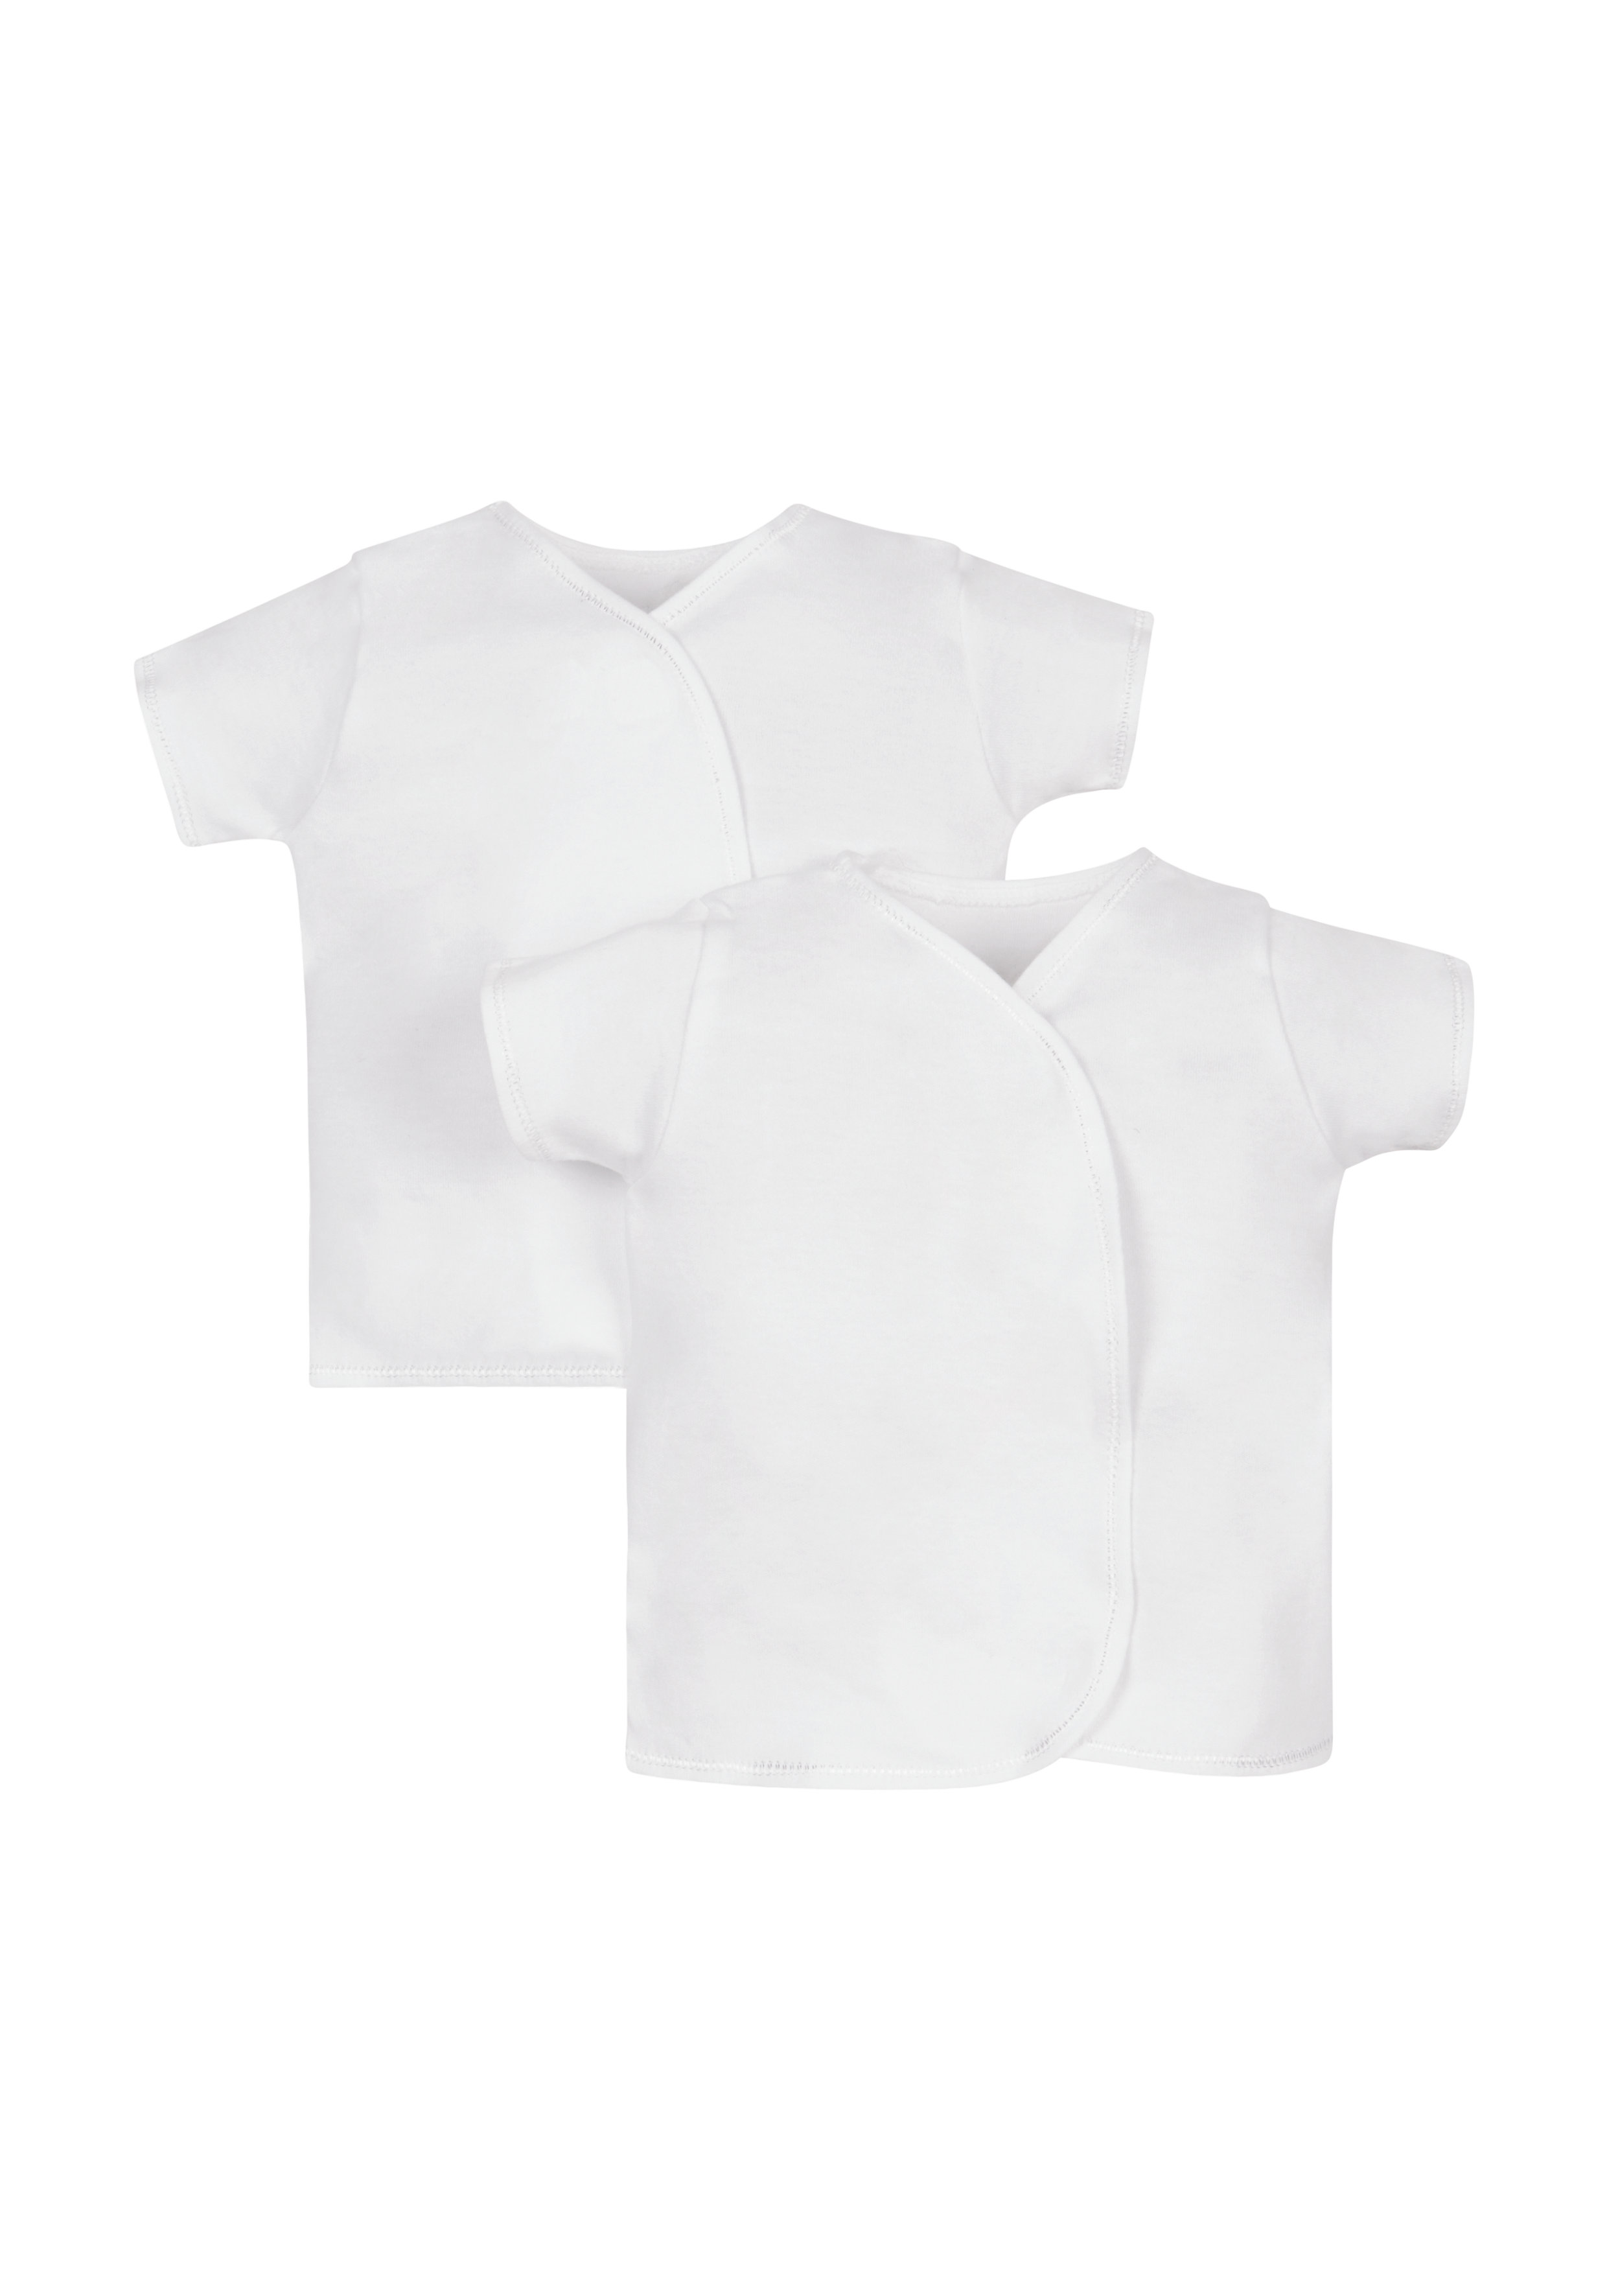 Mothercare | Unisex Half Sleeves Top - Pack Of 2 - White